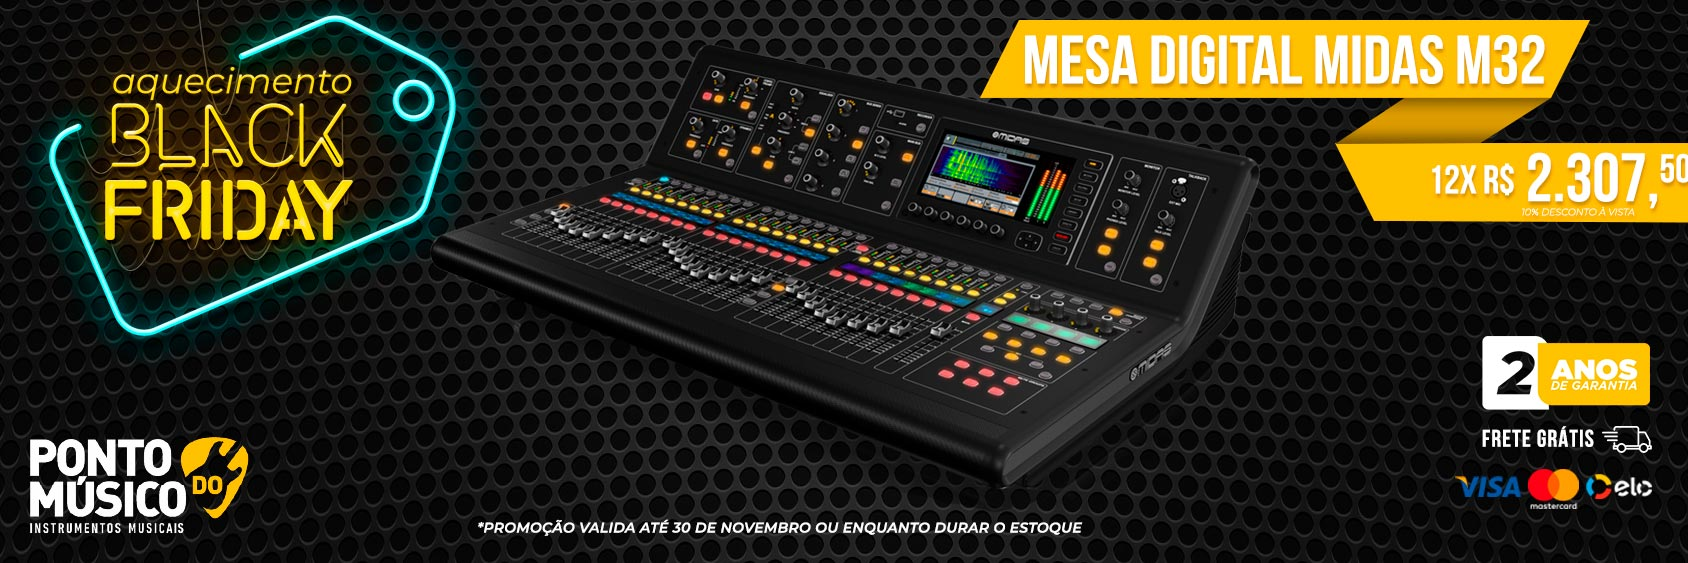 Mesa Digital M32 mIdas